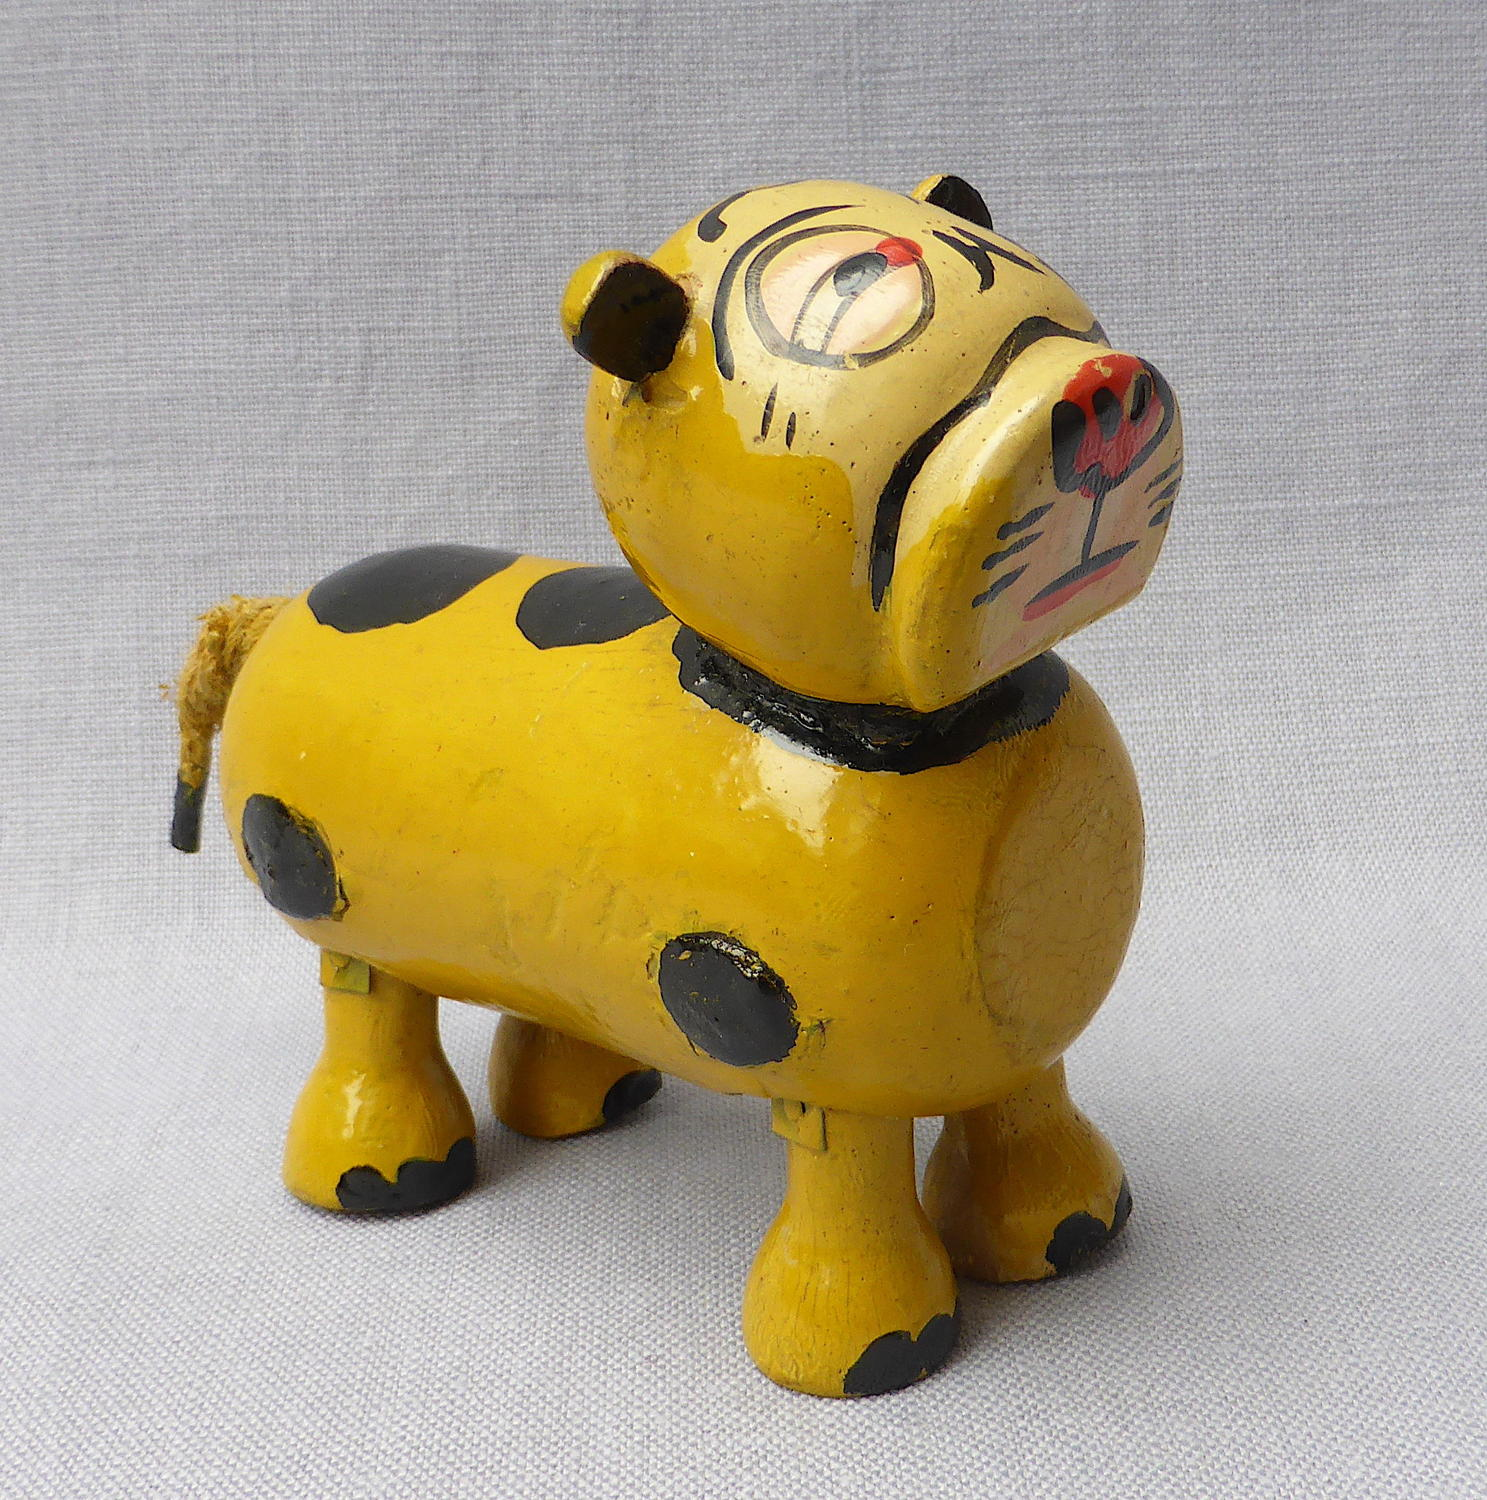 1920s Bonzo ramp walker toy dog